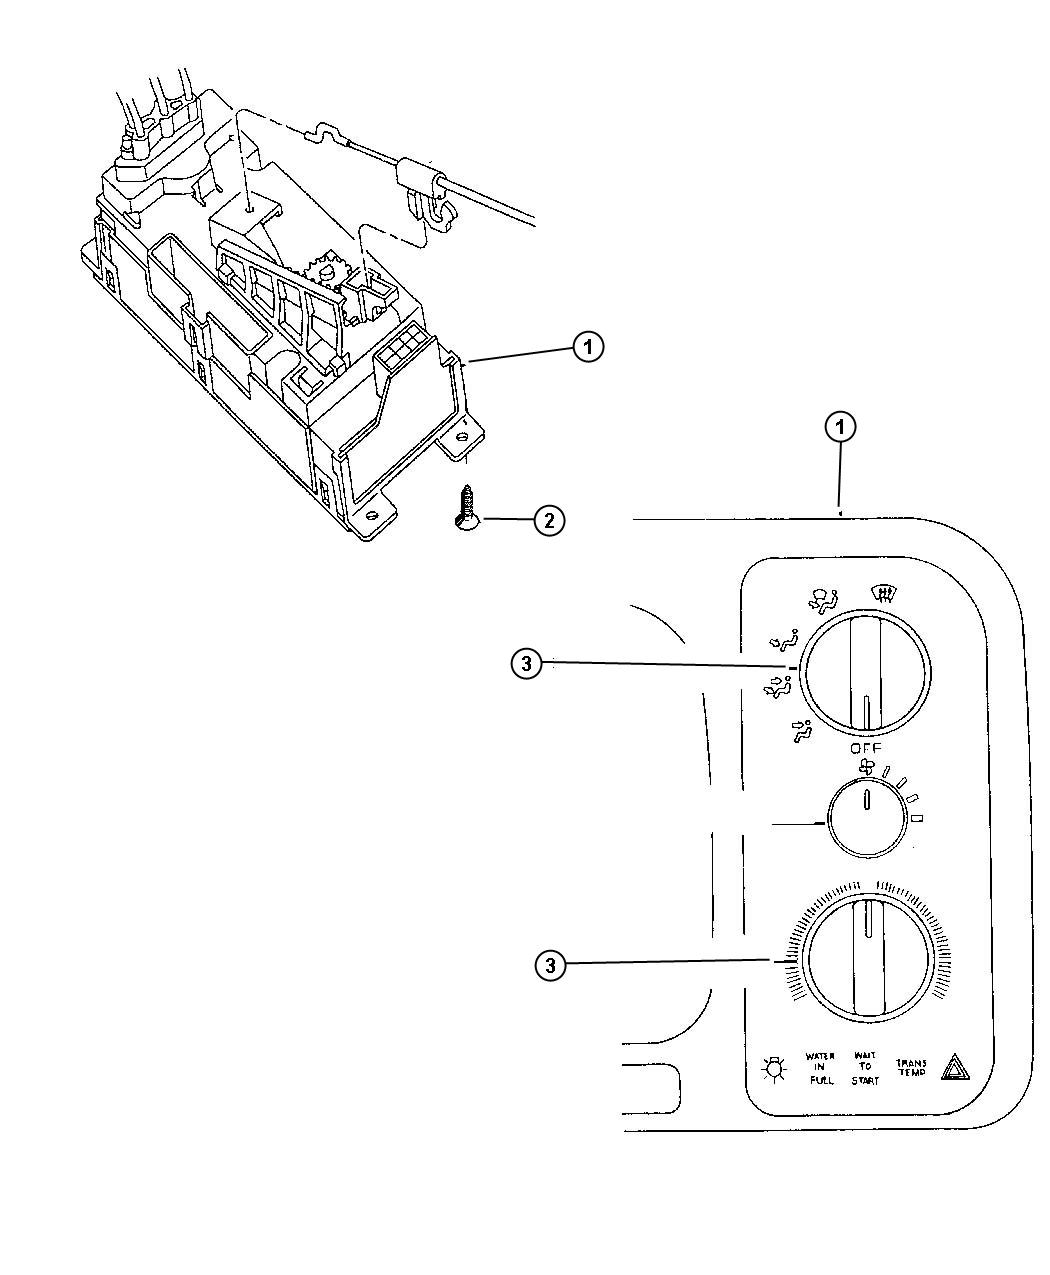 Dodge Ram 1500 Control. Used for: a/c and heater